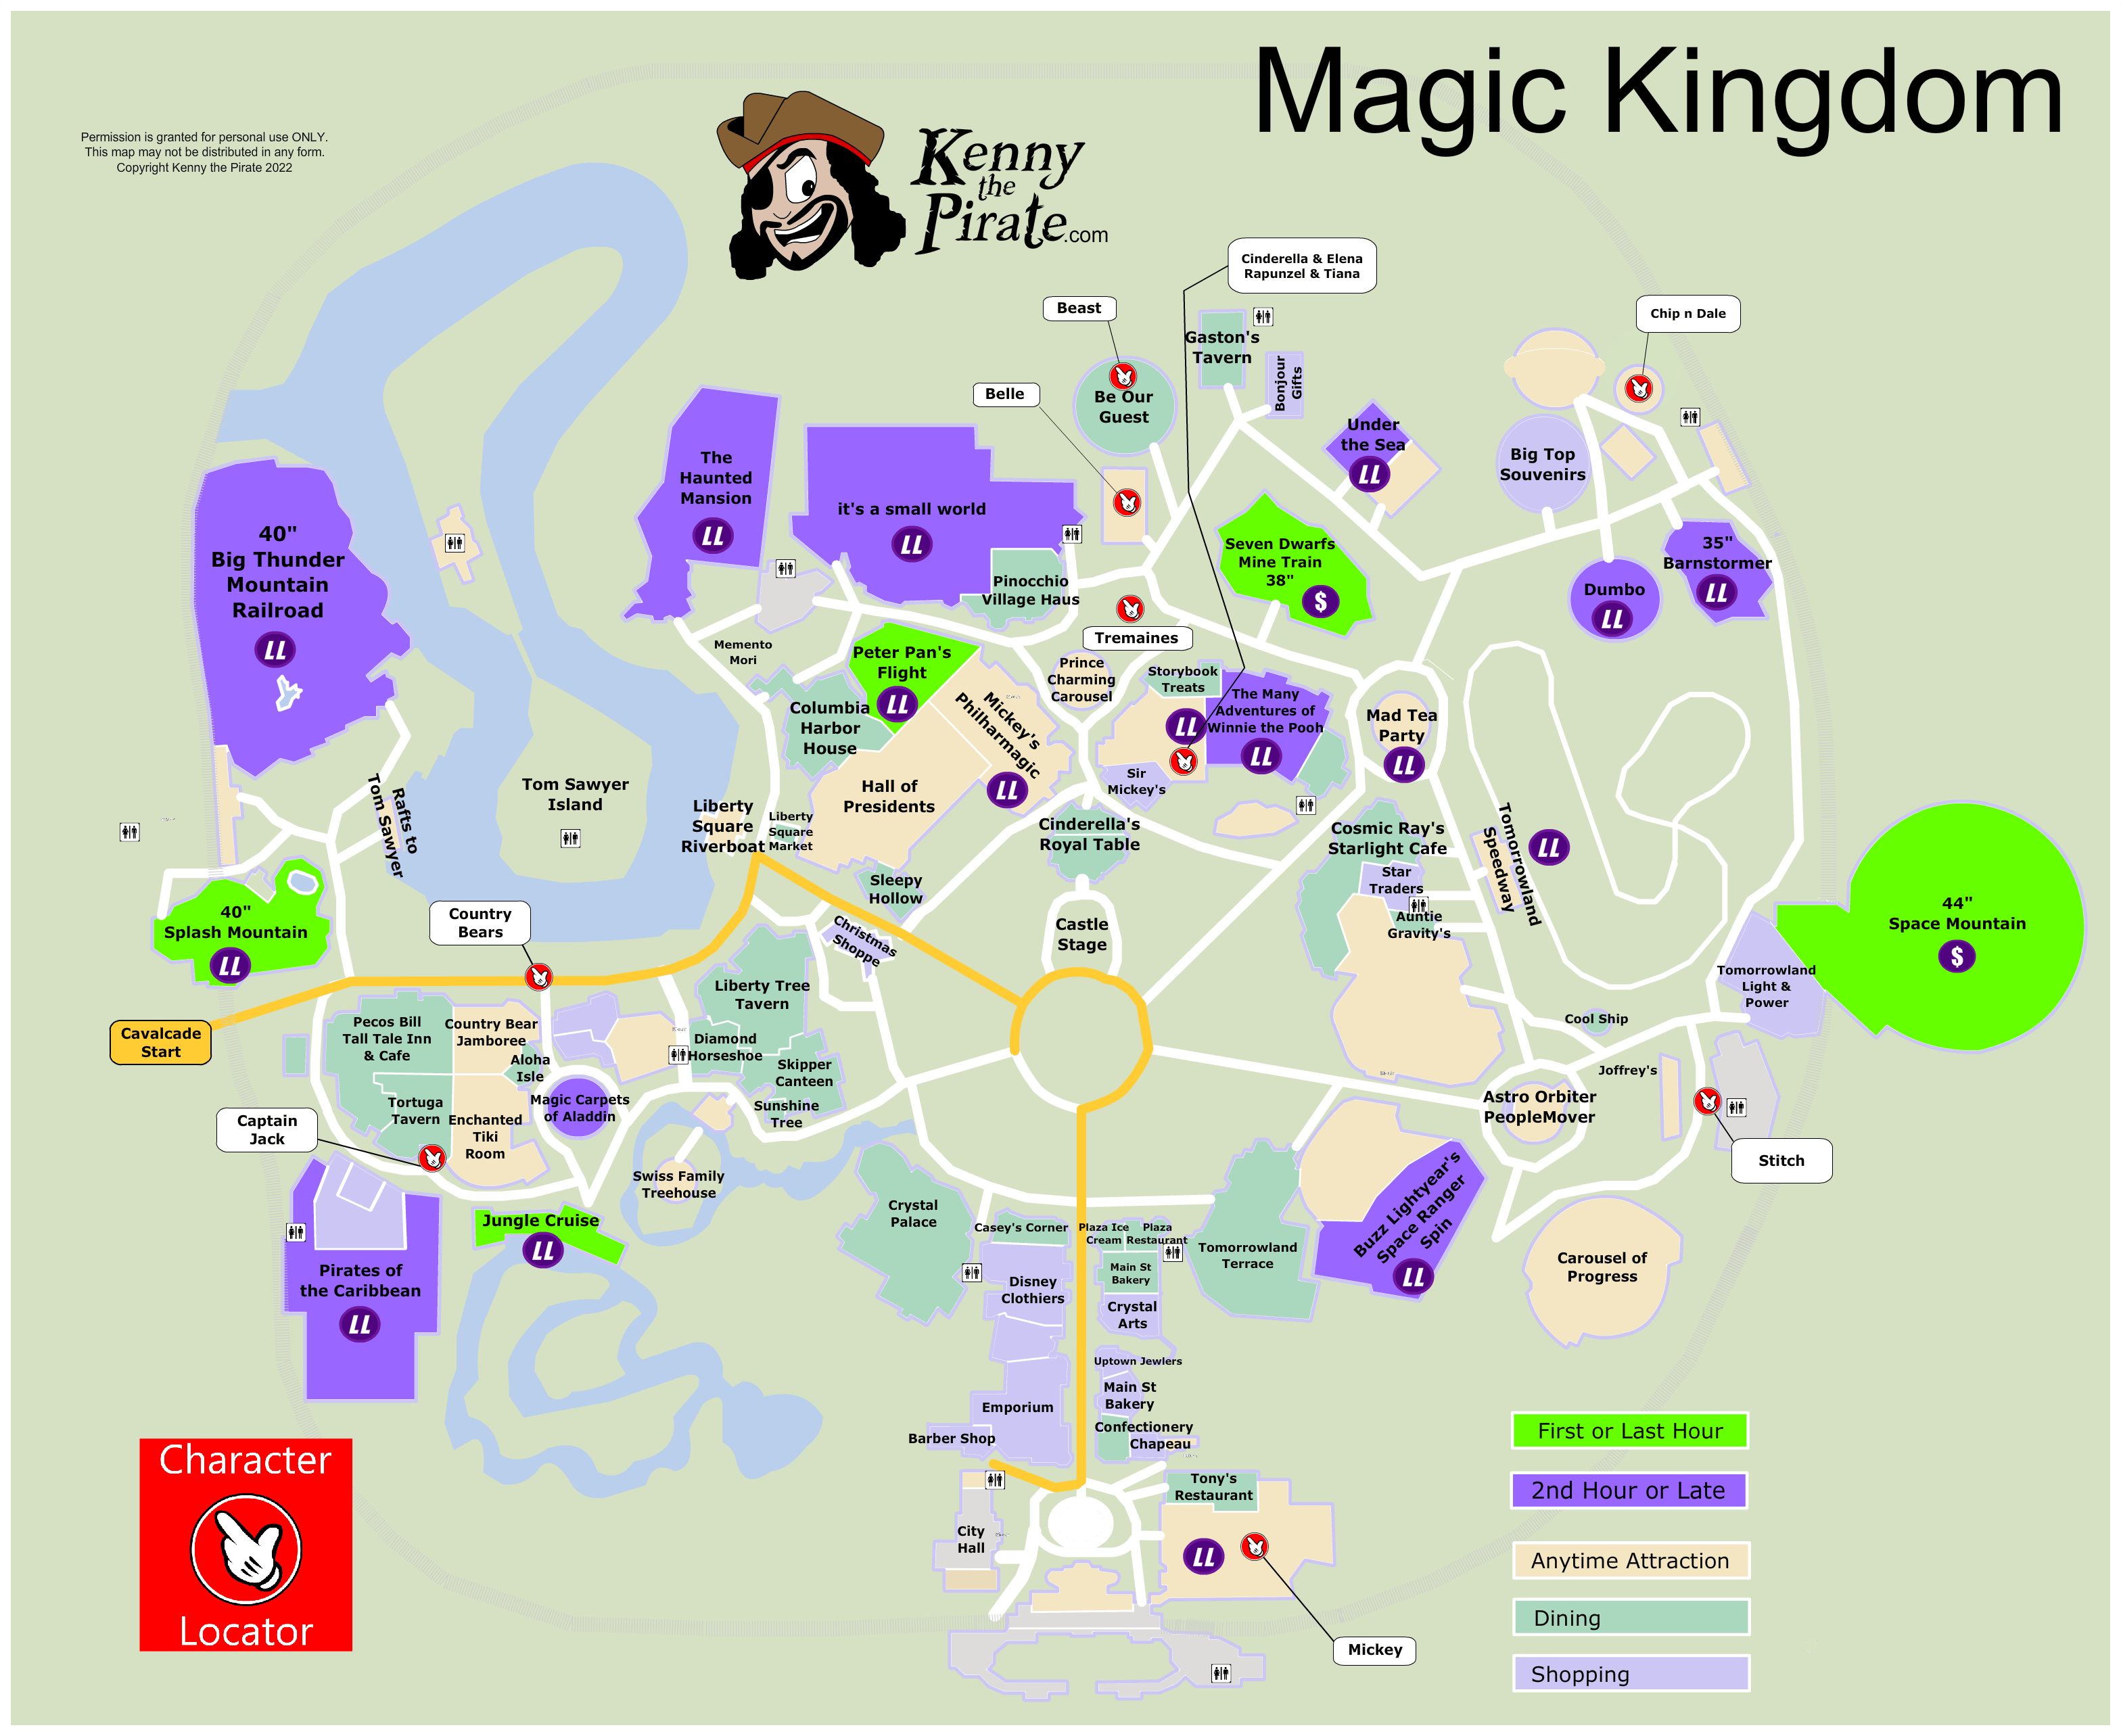 KennythePirate's Magic Kingdom Map including Fastpass Plus locations ...